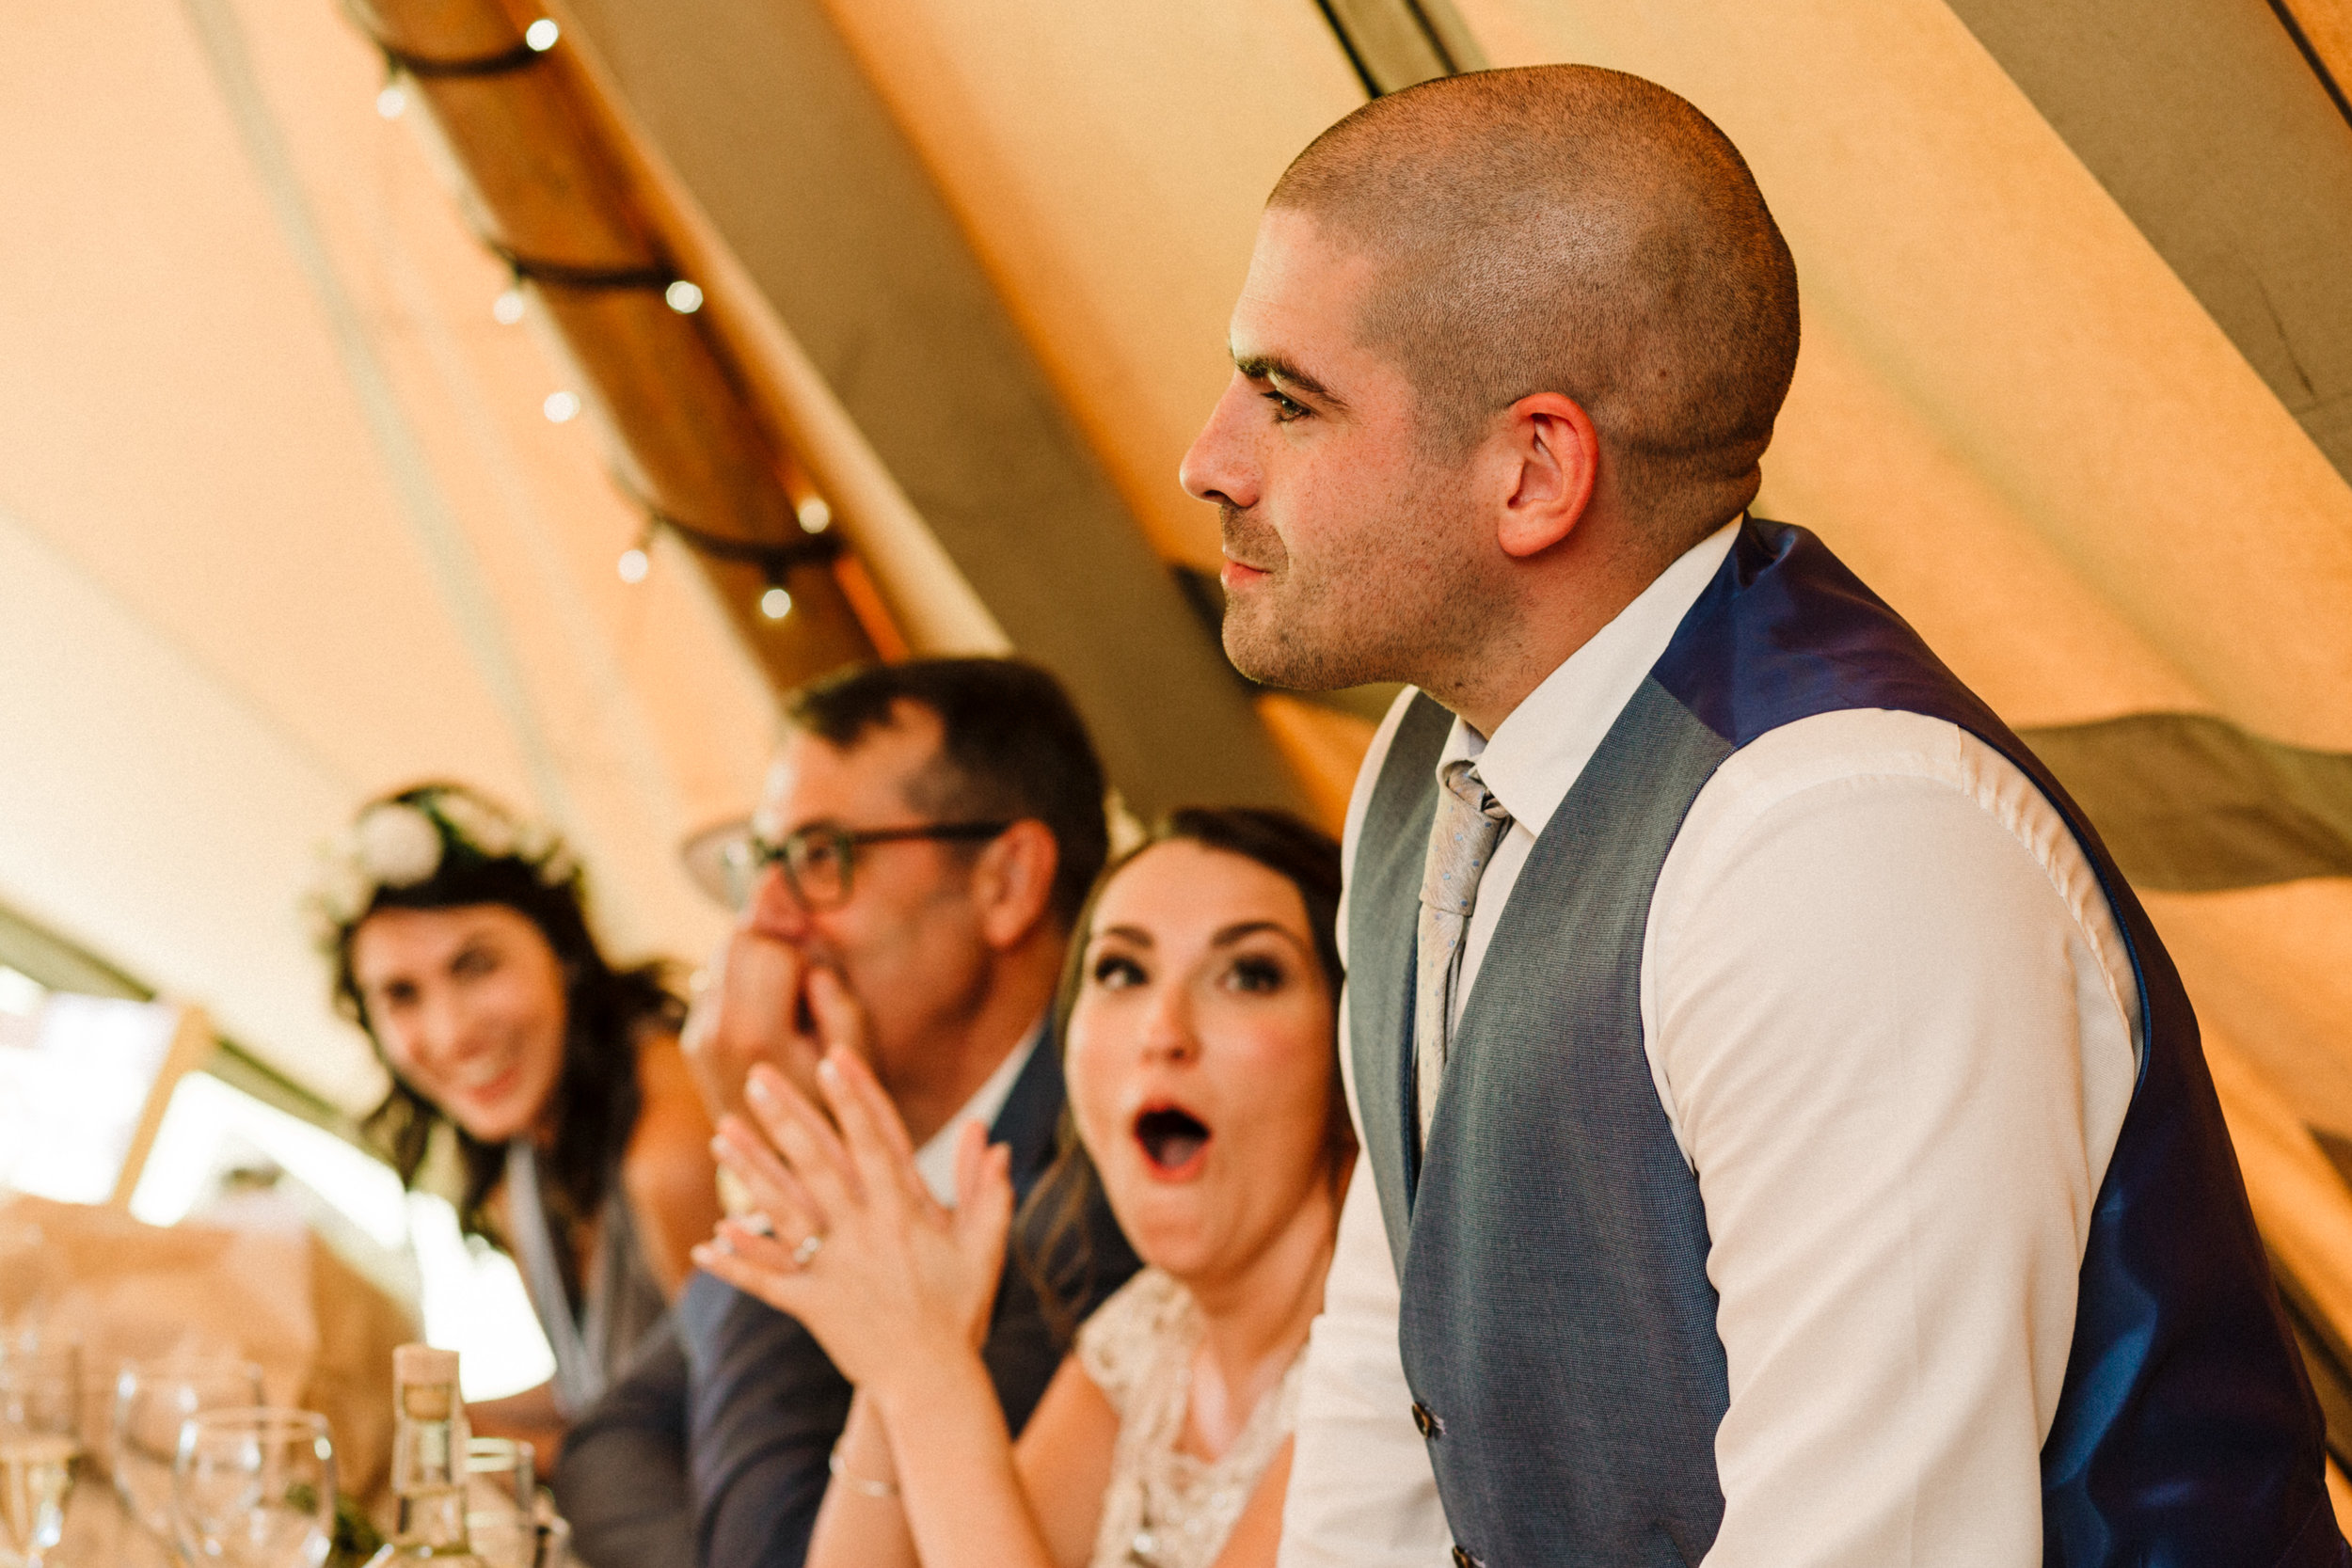 A bride pulling a shocked face during a best man speech